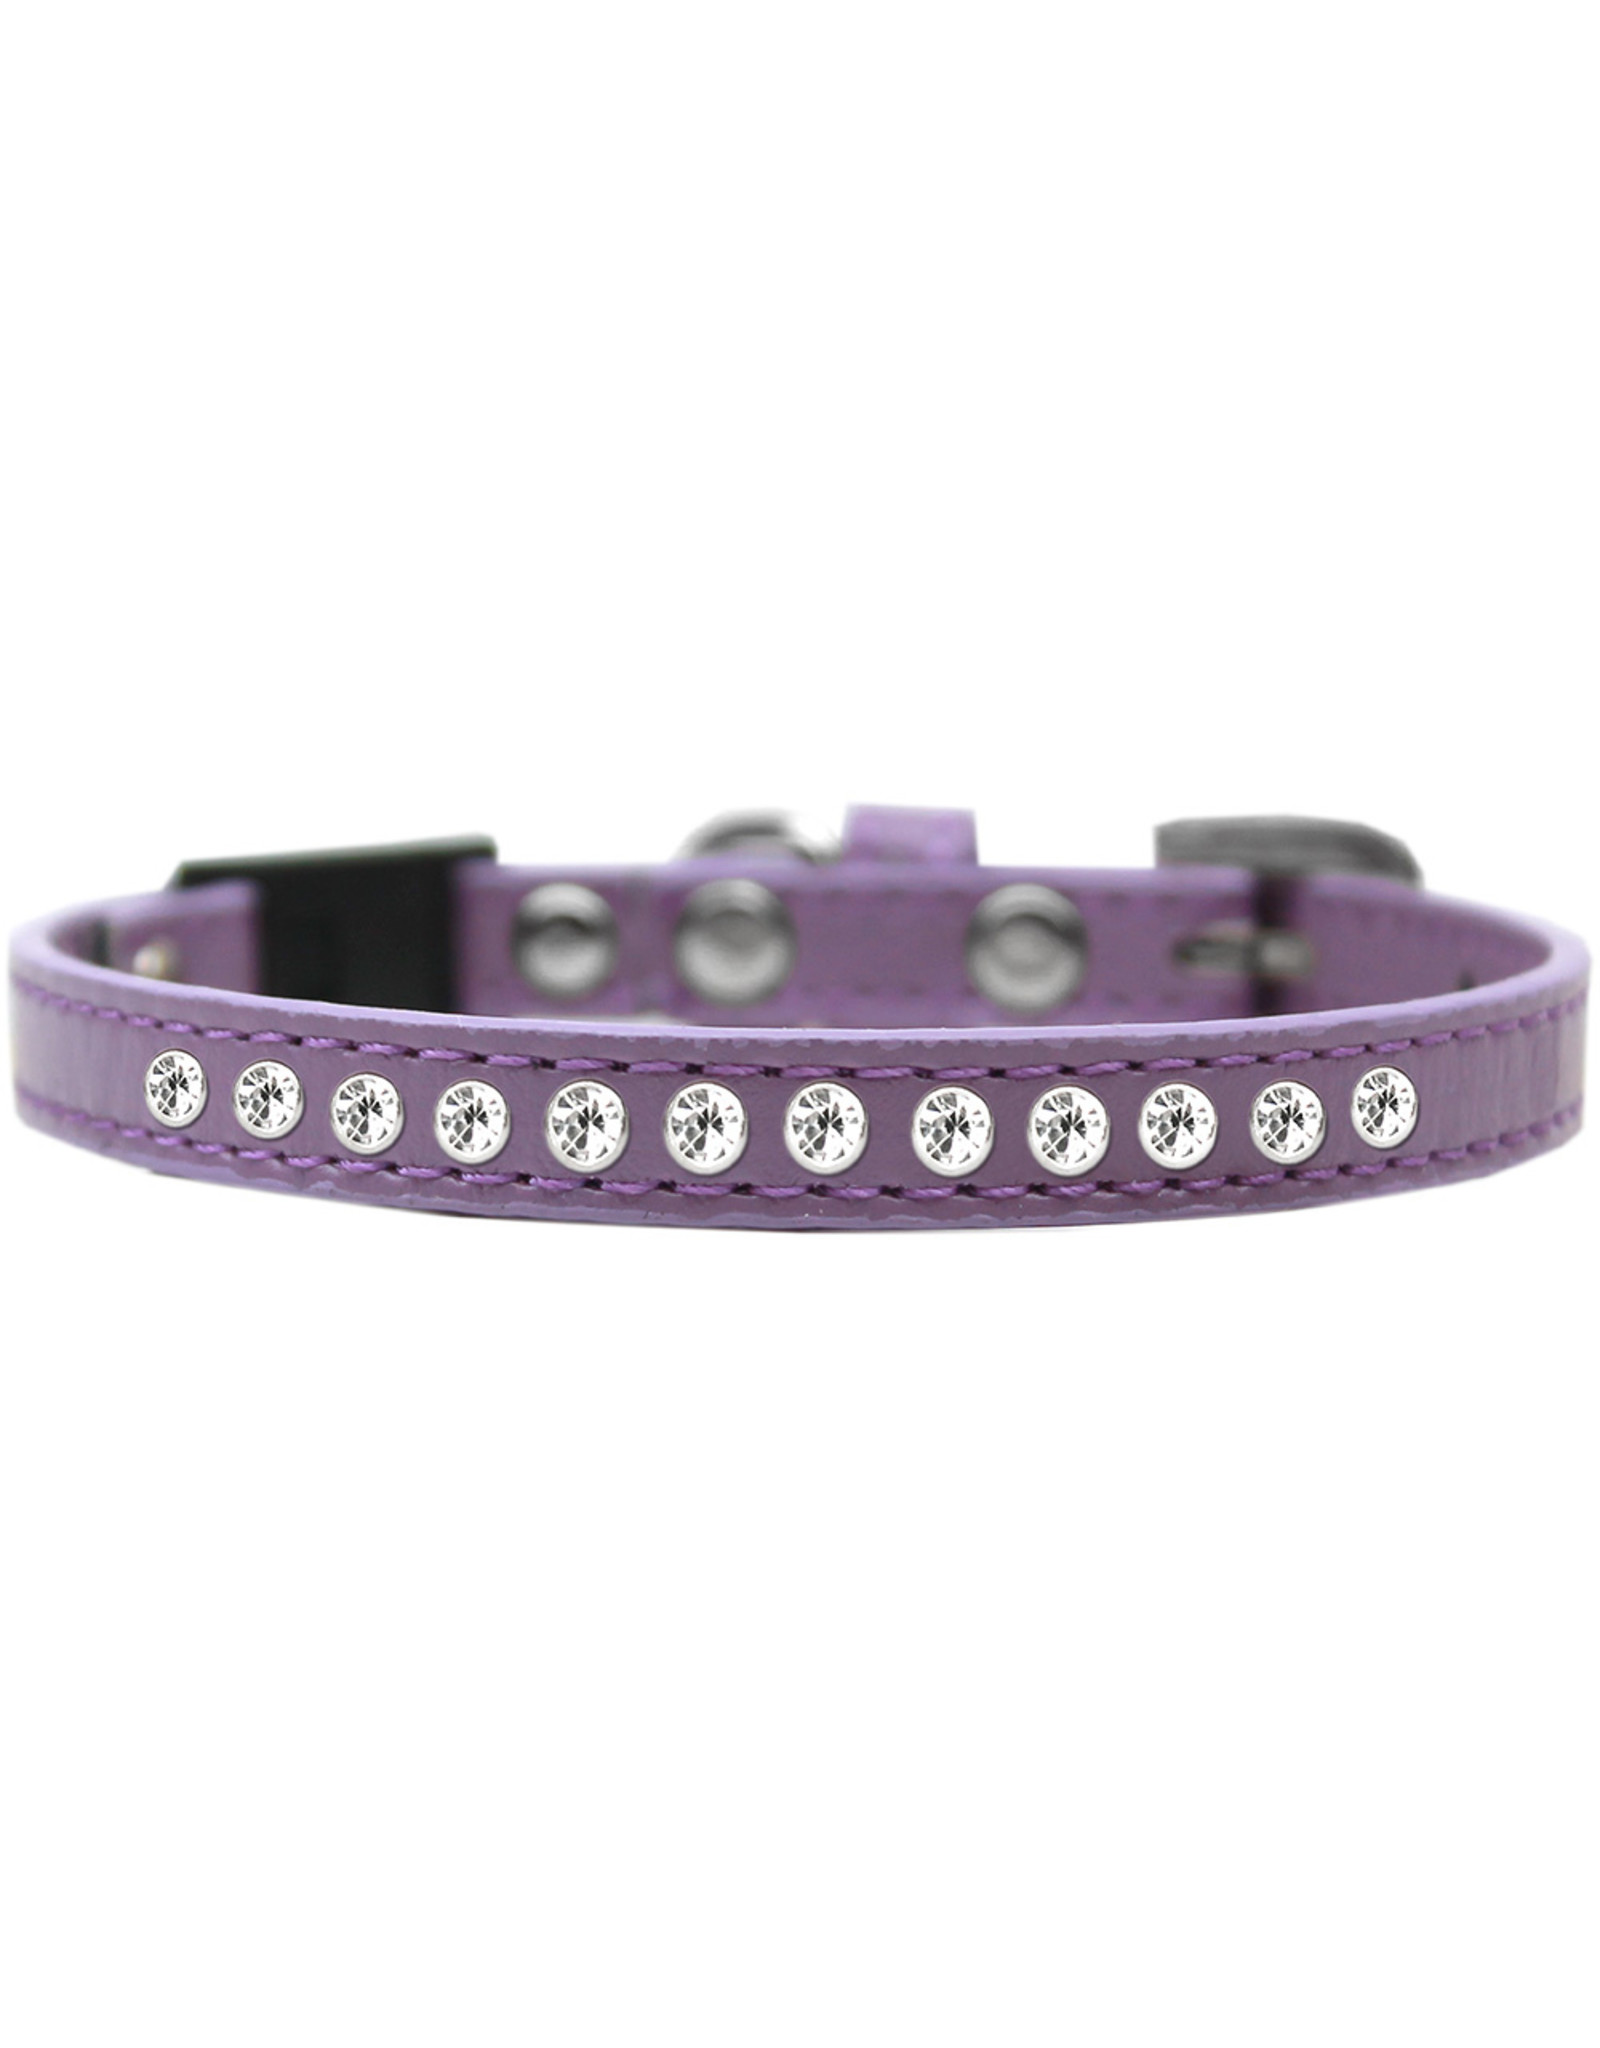 Mirage Pet Products MIRAGE PET PRODUCTS CLEAR JEWEL BREAKAWAY CAT COLLAR